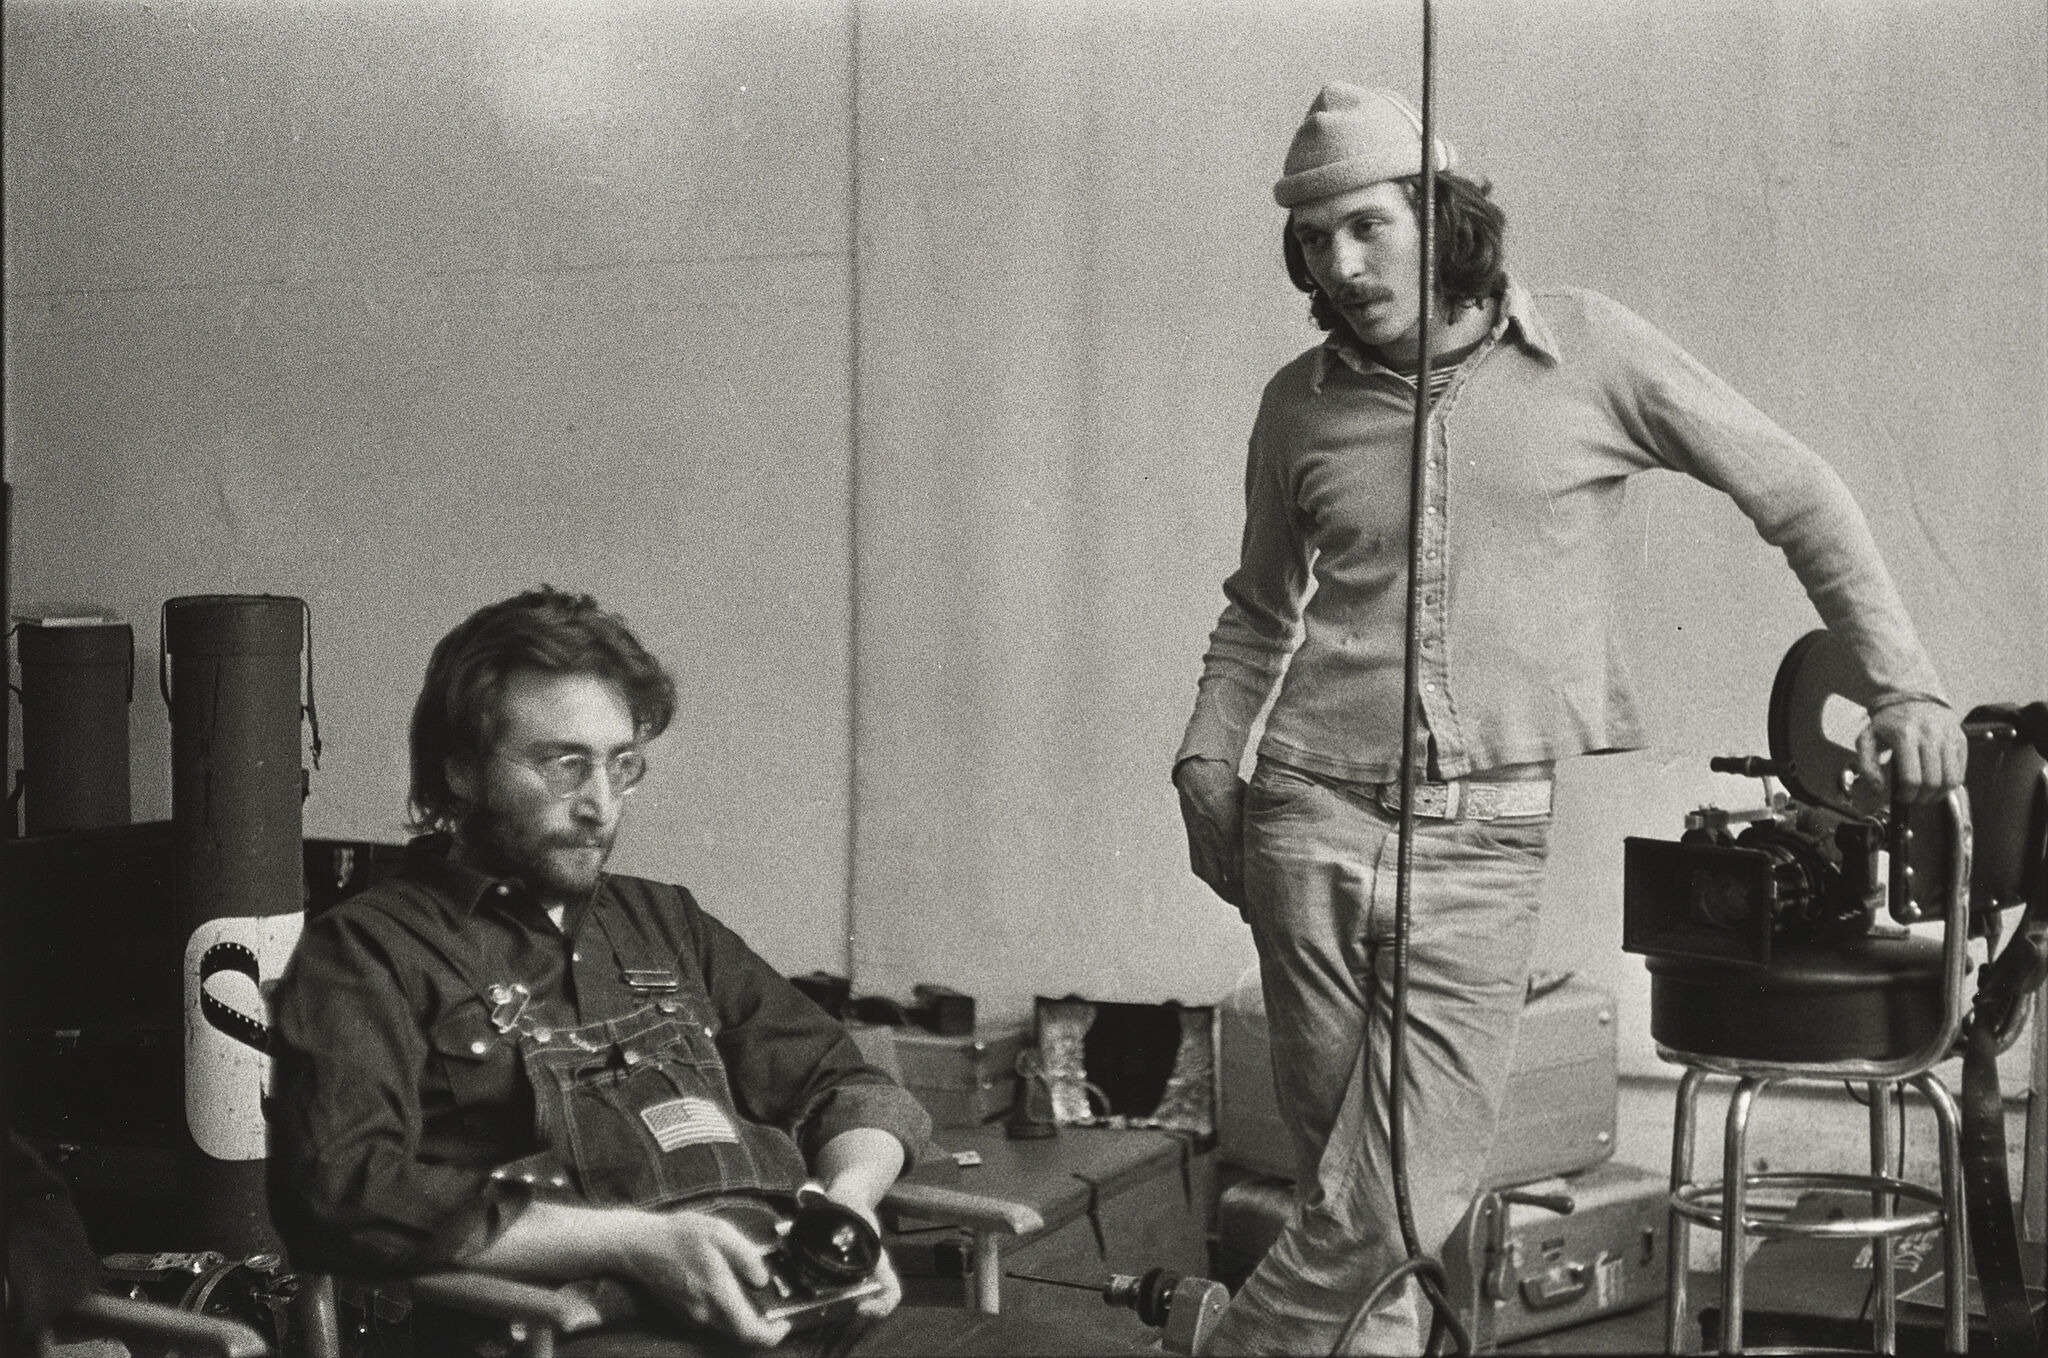 John Lennon sits in a chair and holds a camera while another man stands next to him.